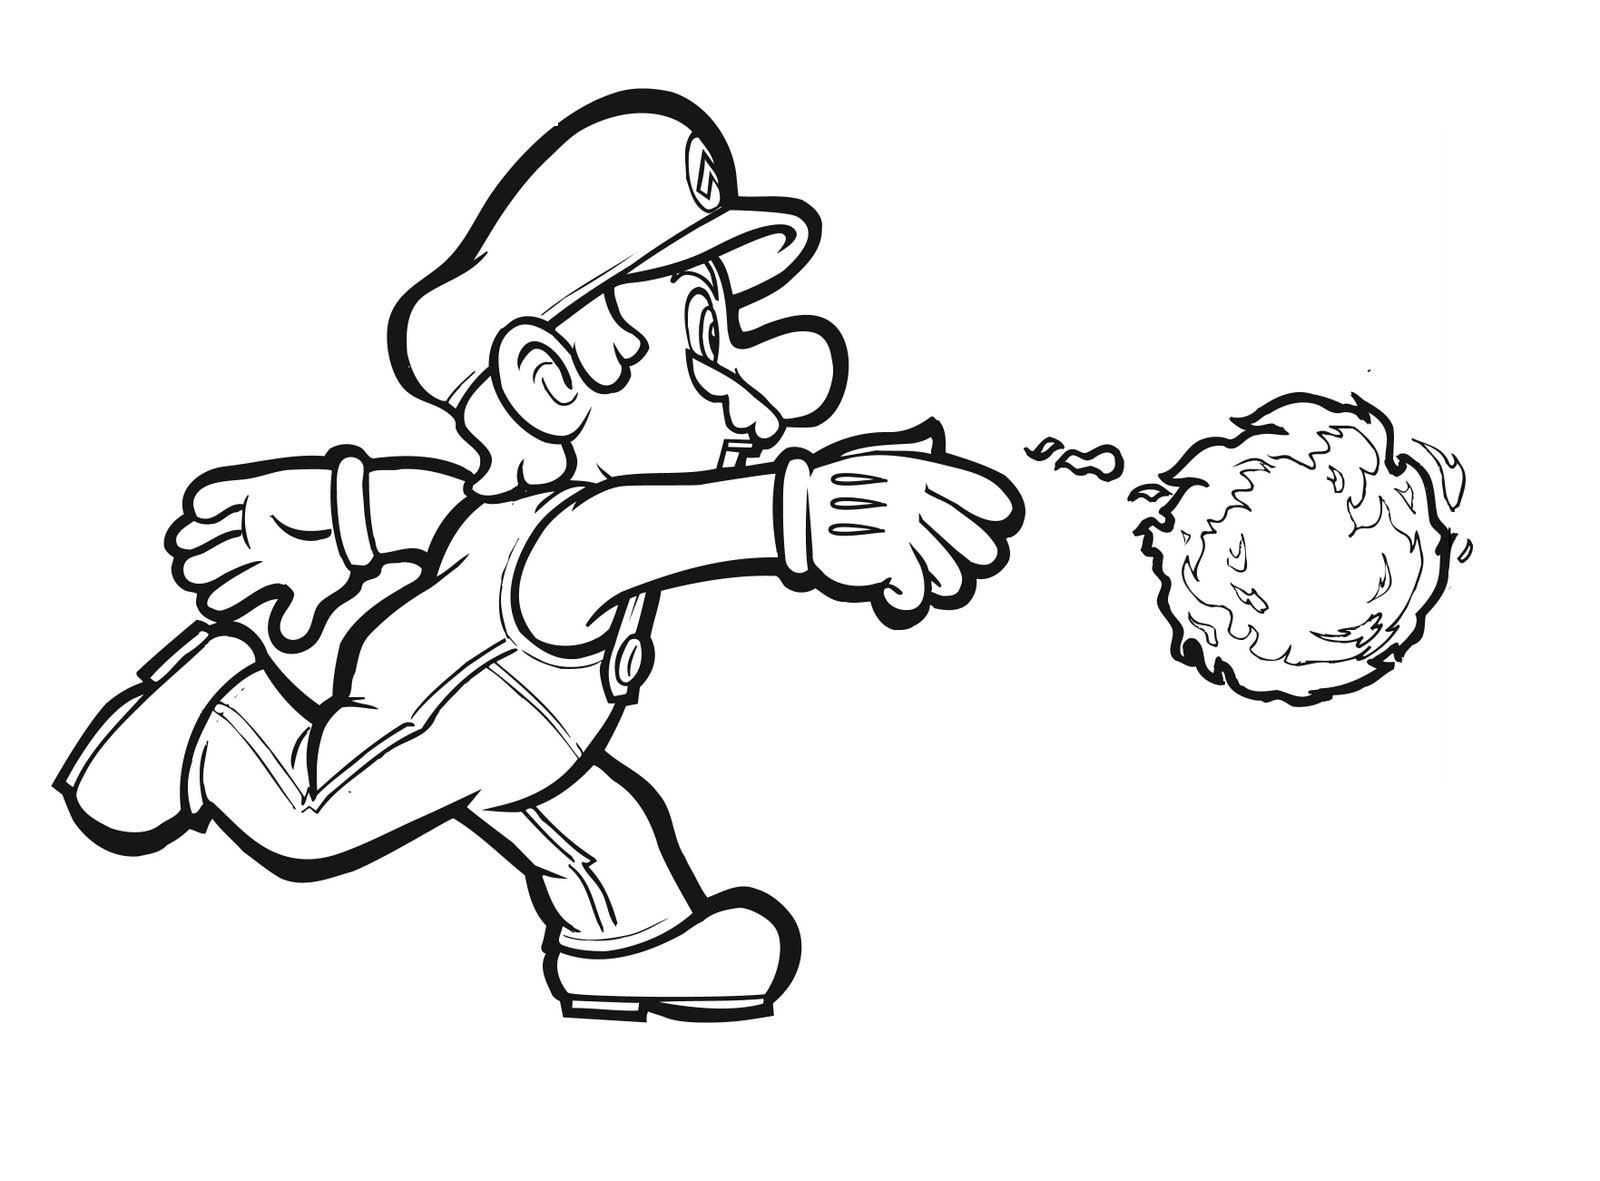 25 Free Mario Coloring Pages Images Free Coloring Pages Part 3